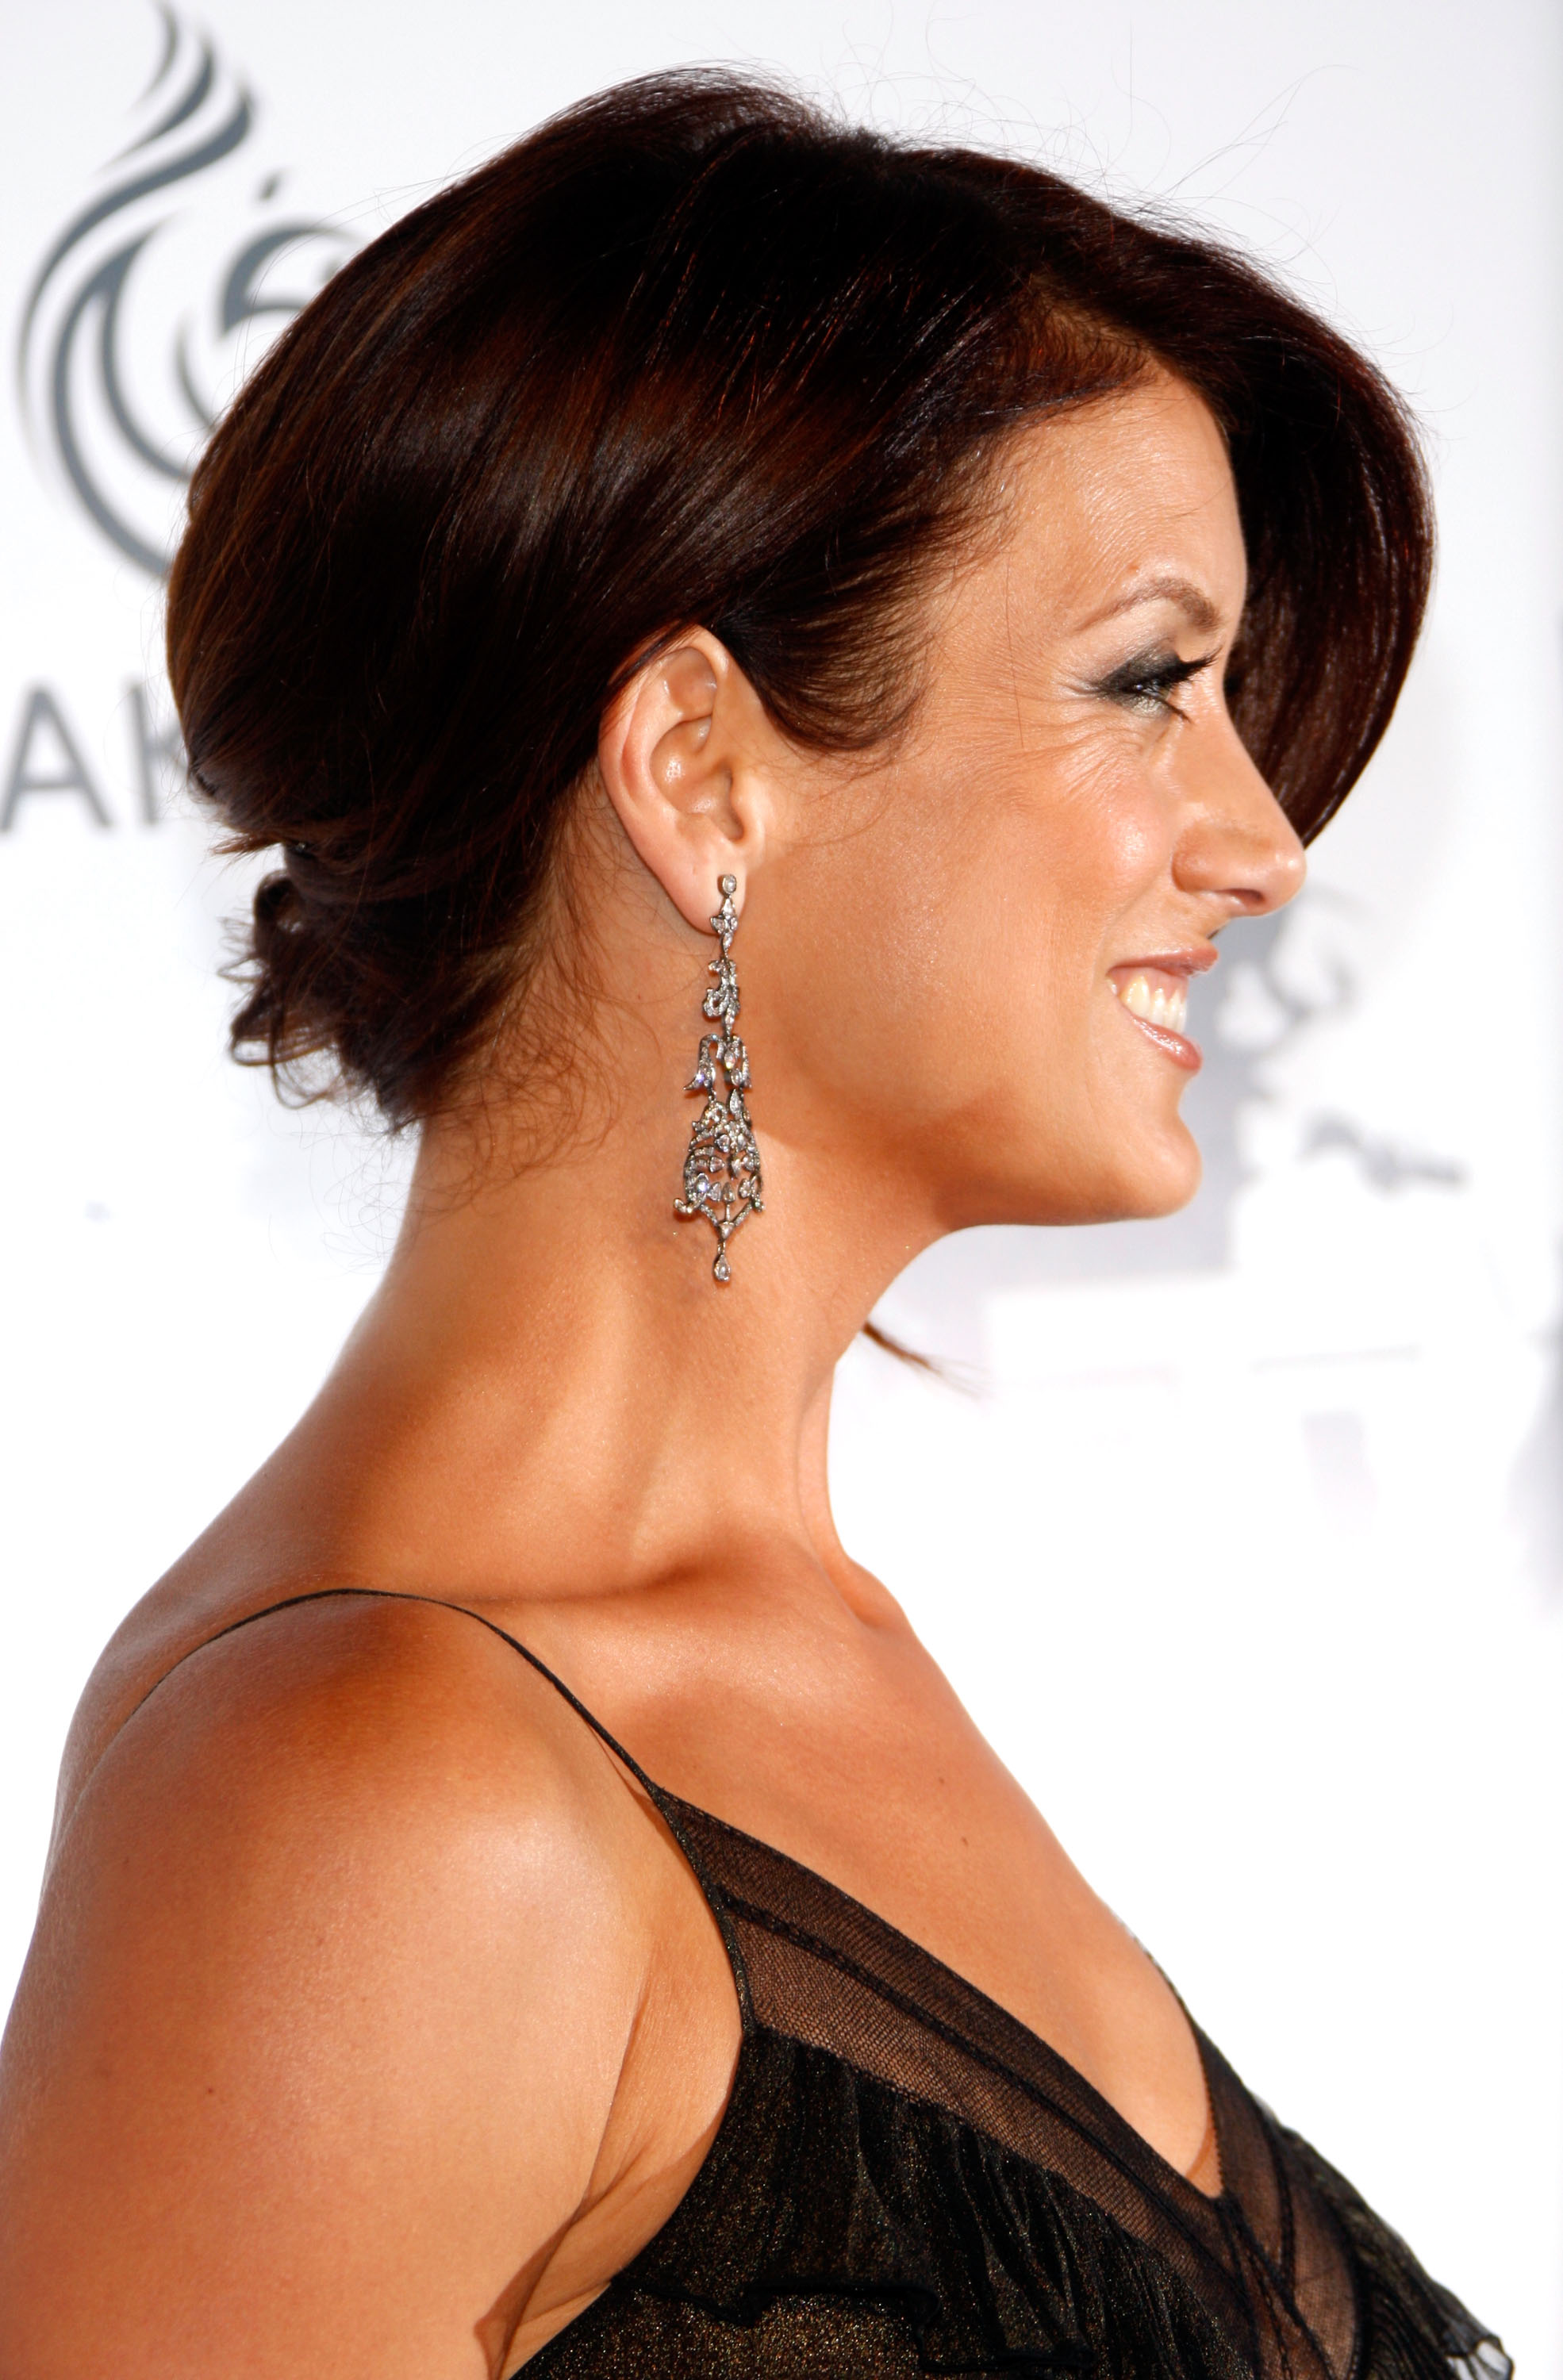 Kate Walsh is a Skin Health